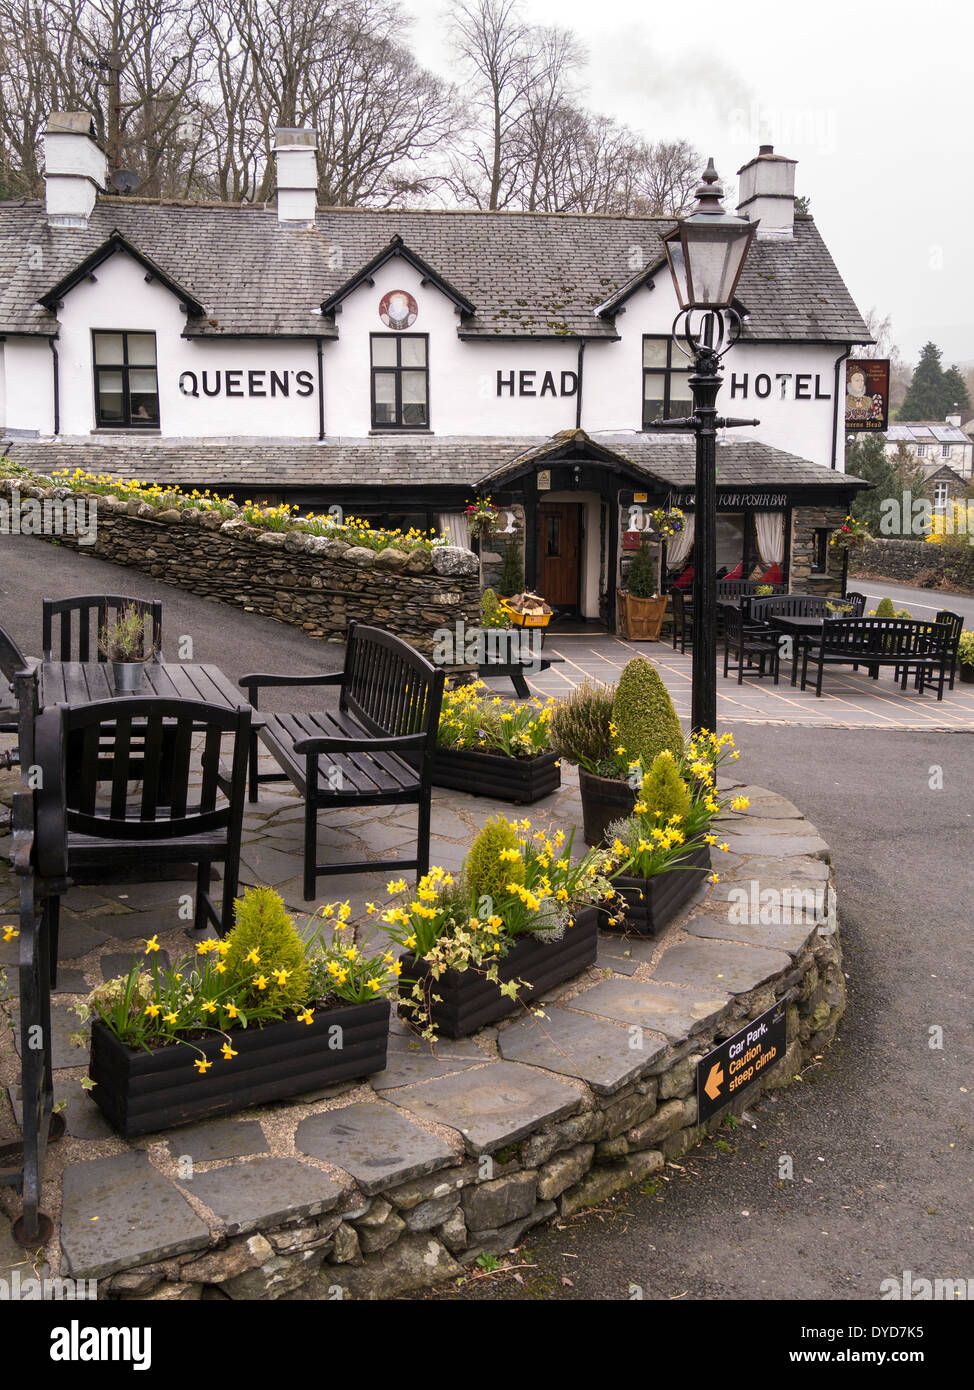 Queens Head Hotel, Troutbeck, English Lake District, Cumbria, England, UK - Stock Image